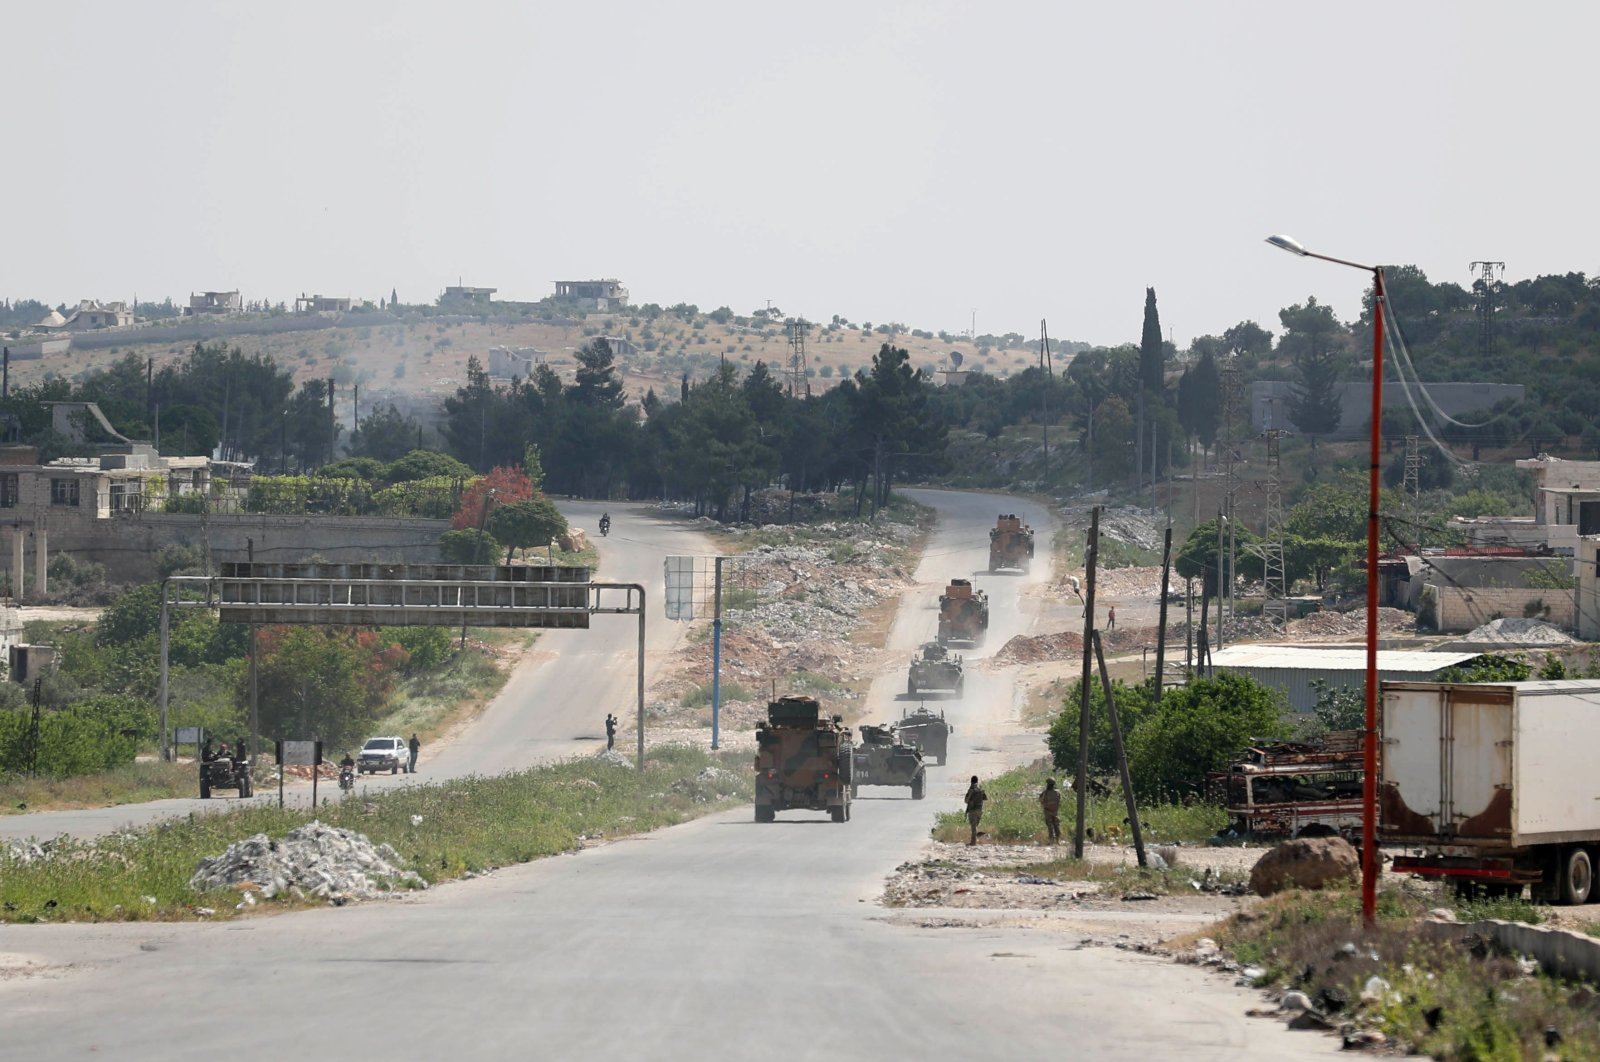 Military vehicles of a joint Turkish-Russian patrol pass through the M4 highway on the outskirts of the rebel-held town of Ariha in Syria's northwestern Idlib province on May 7, 2020. (AFP)